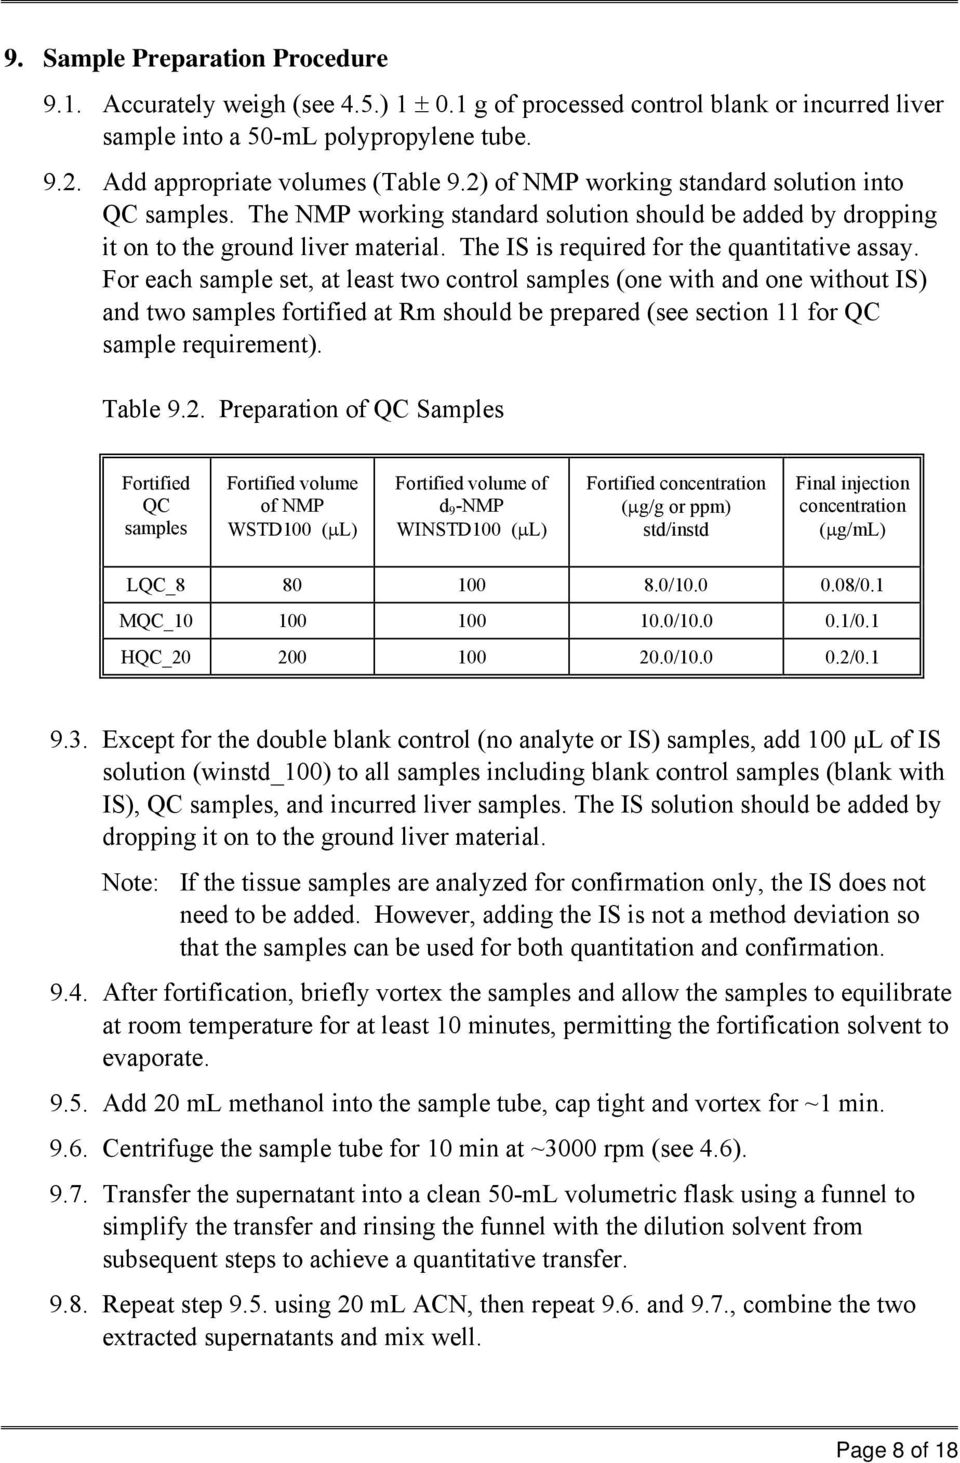 For each sample set, at least two control samples (one with and one without IS) and two samples fortified at Rm should be prepared (see section 11 for QC sample requirement). Table 9.2.